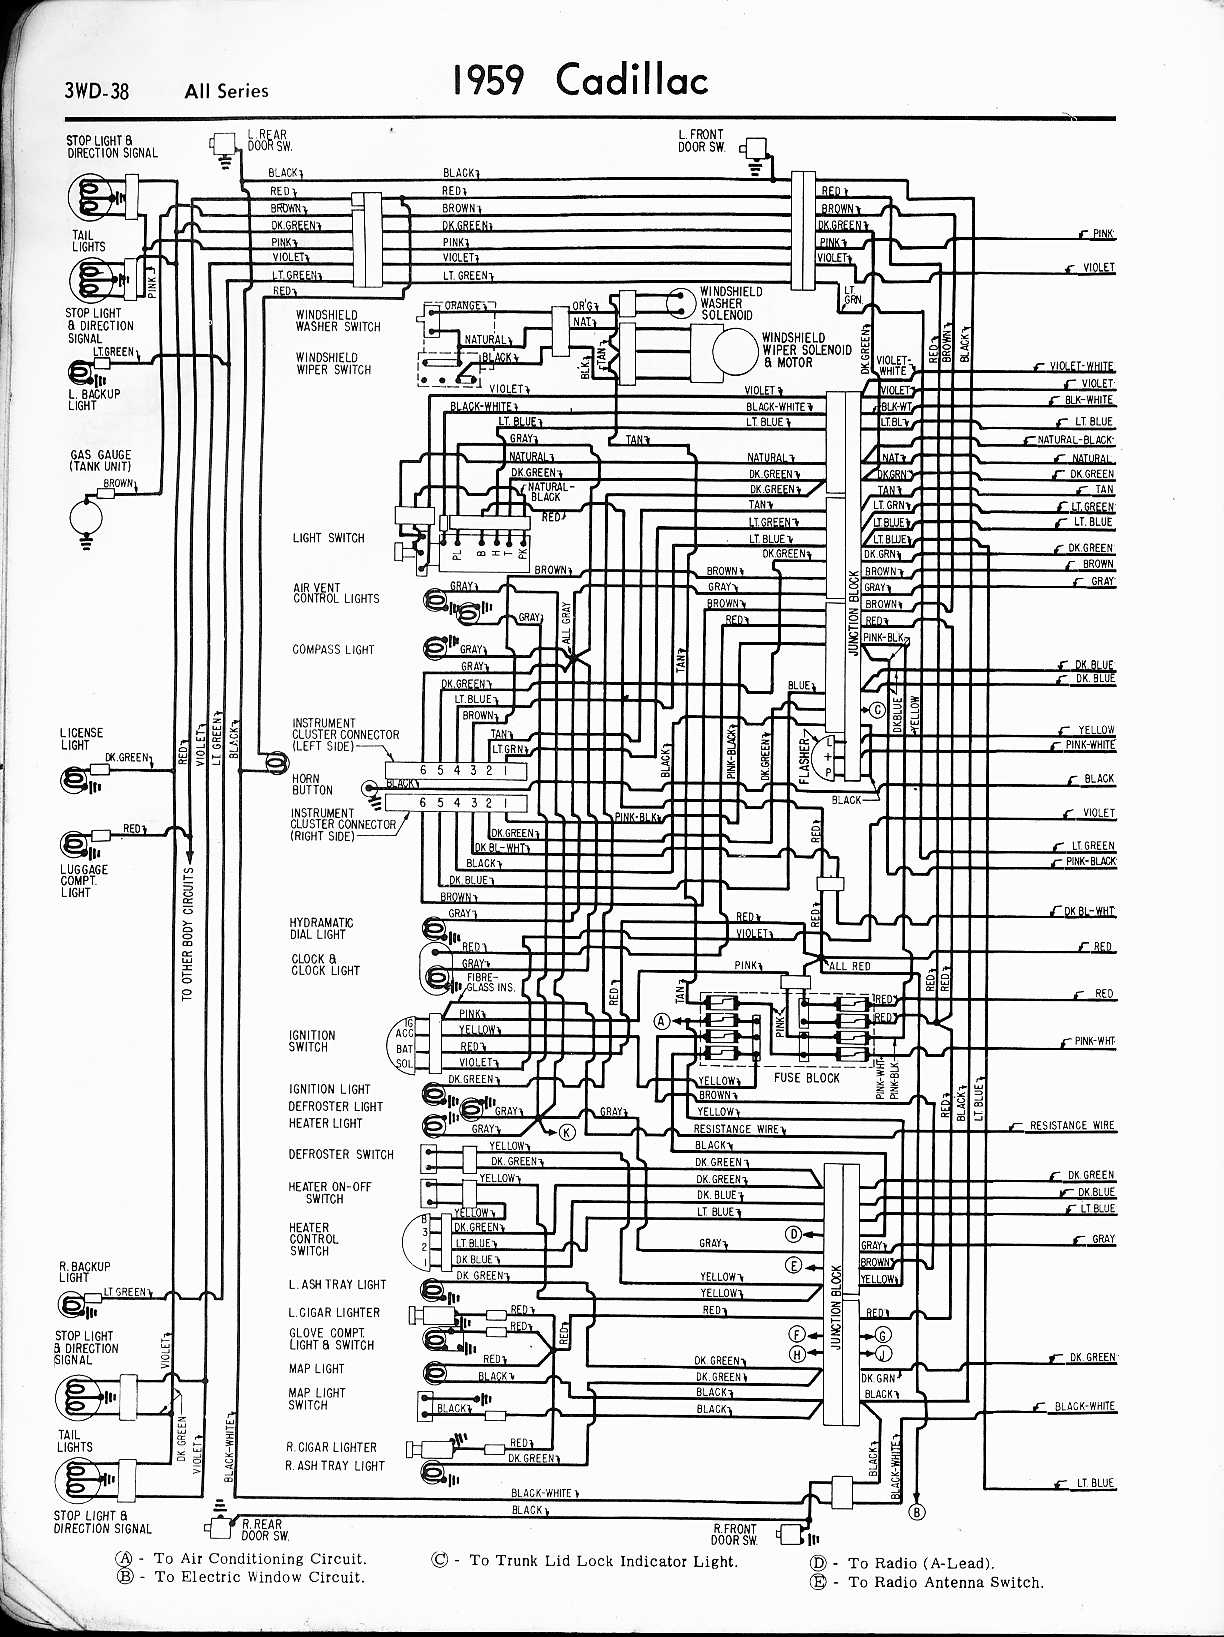 1957 cadillac seat wiring data wiring diagram update rh 12 dfvcx petersen guitars de 1960 cadillac power seat wiring diagram